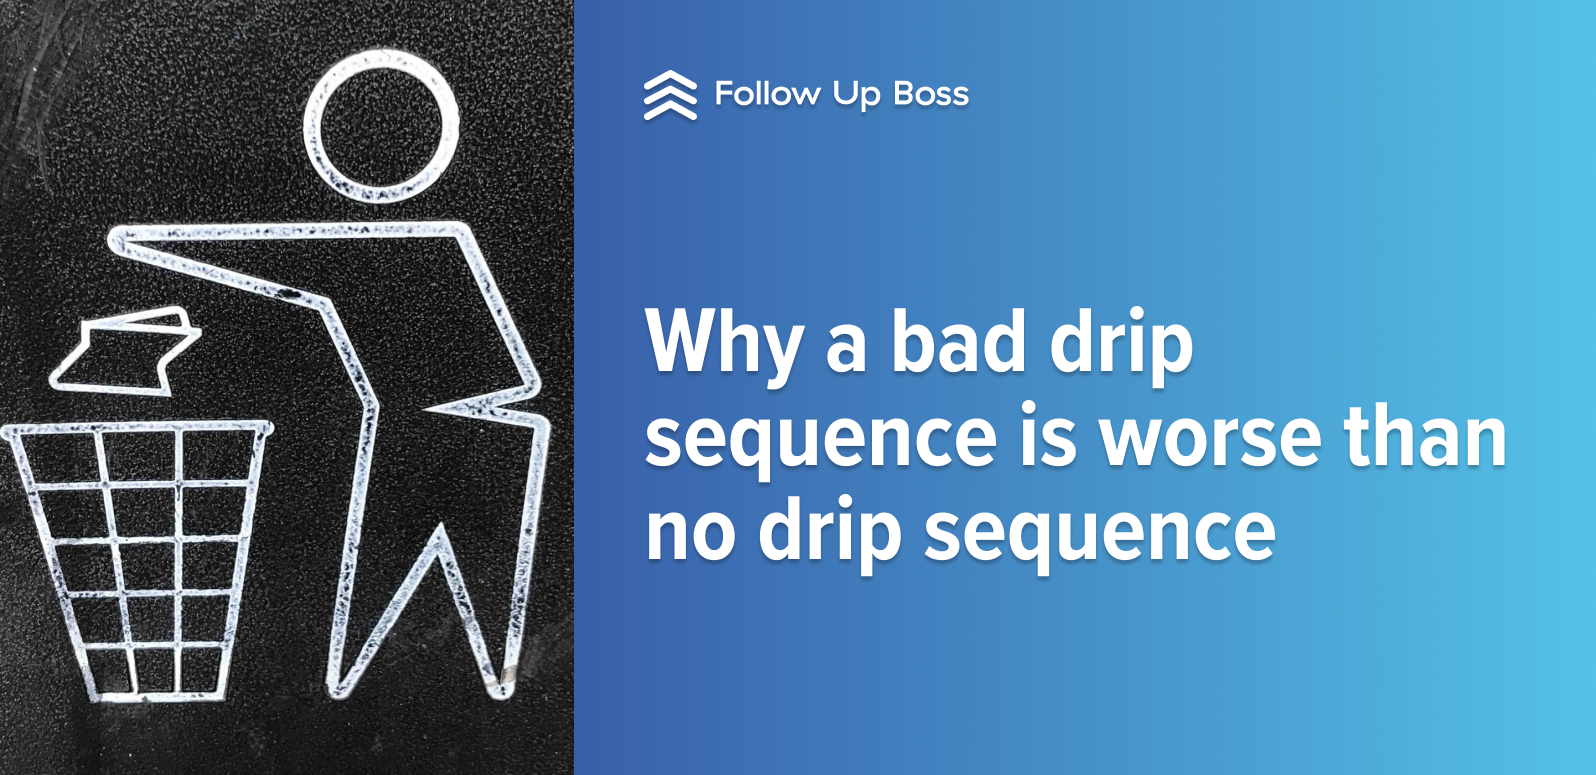 Why a Bad Drip Sequence Is Worse than No Drip Sequence